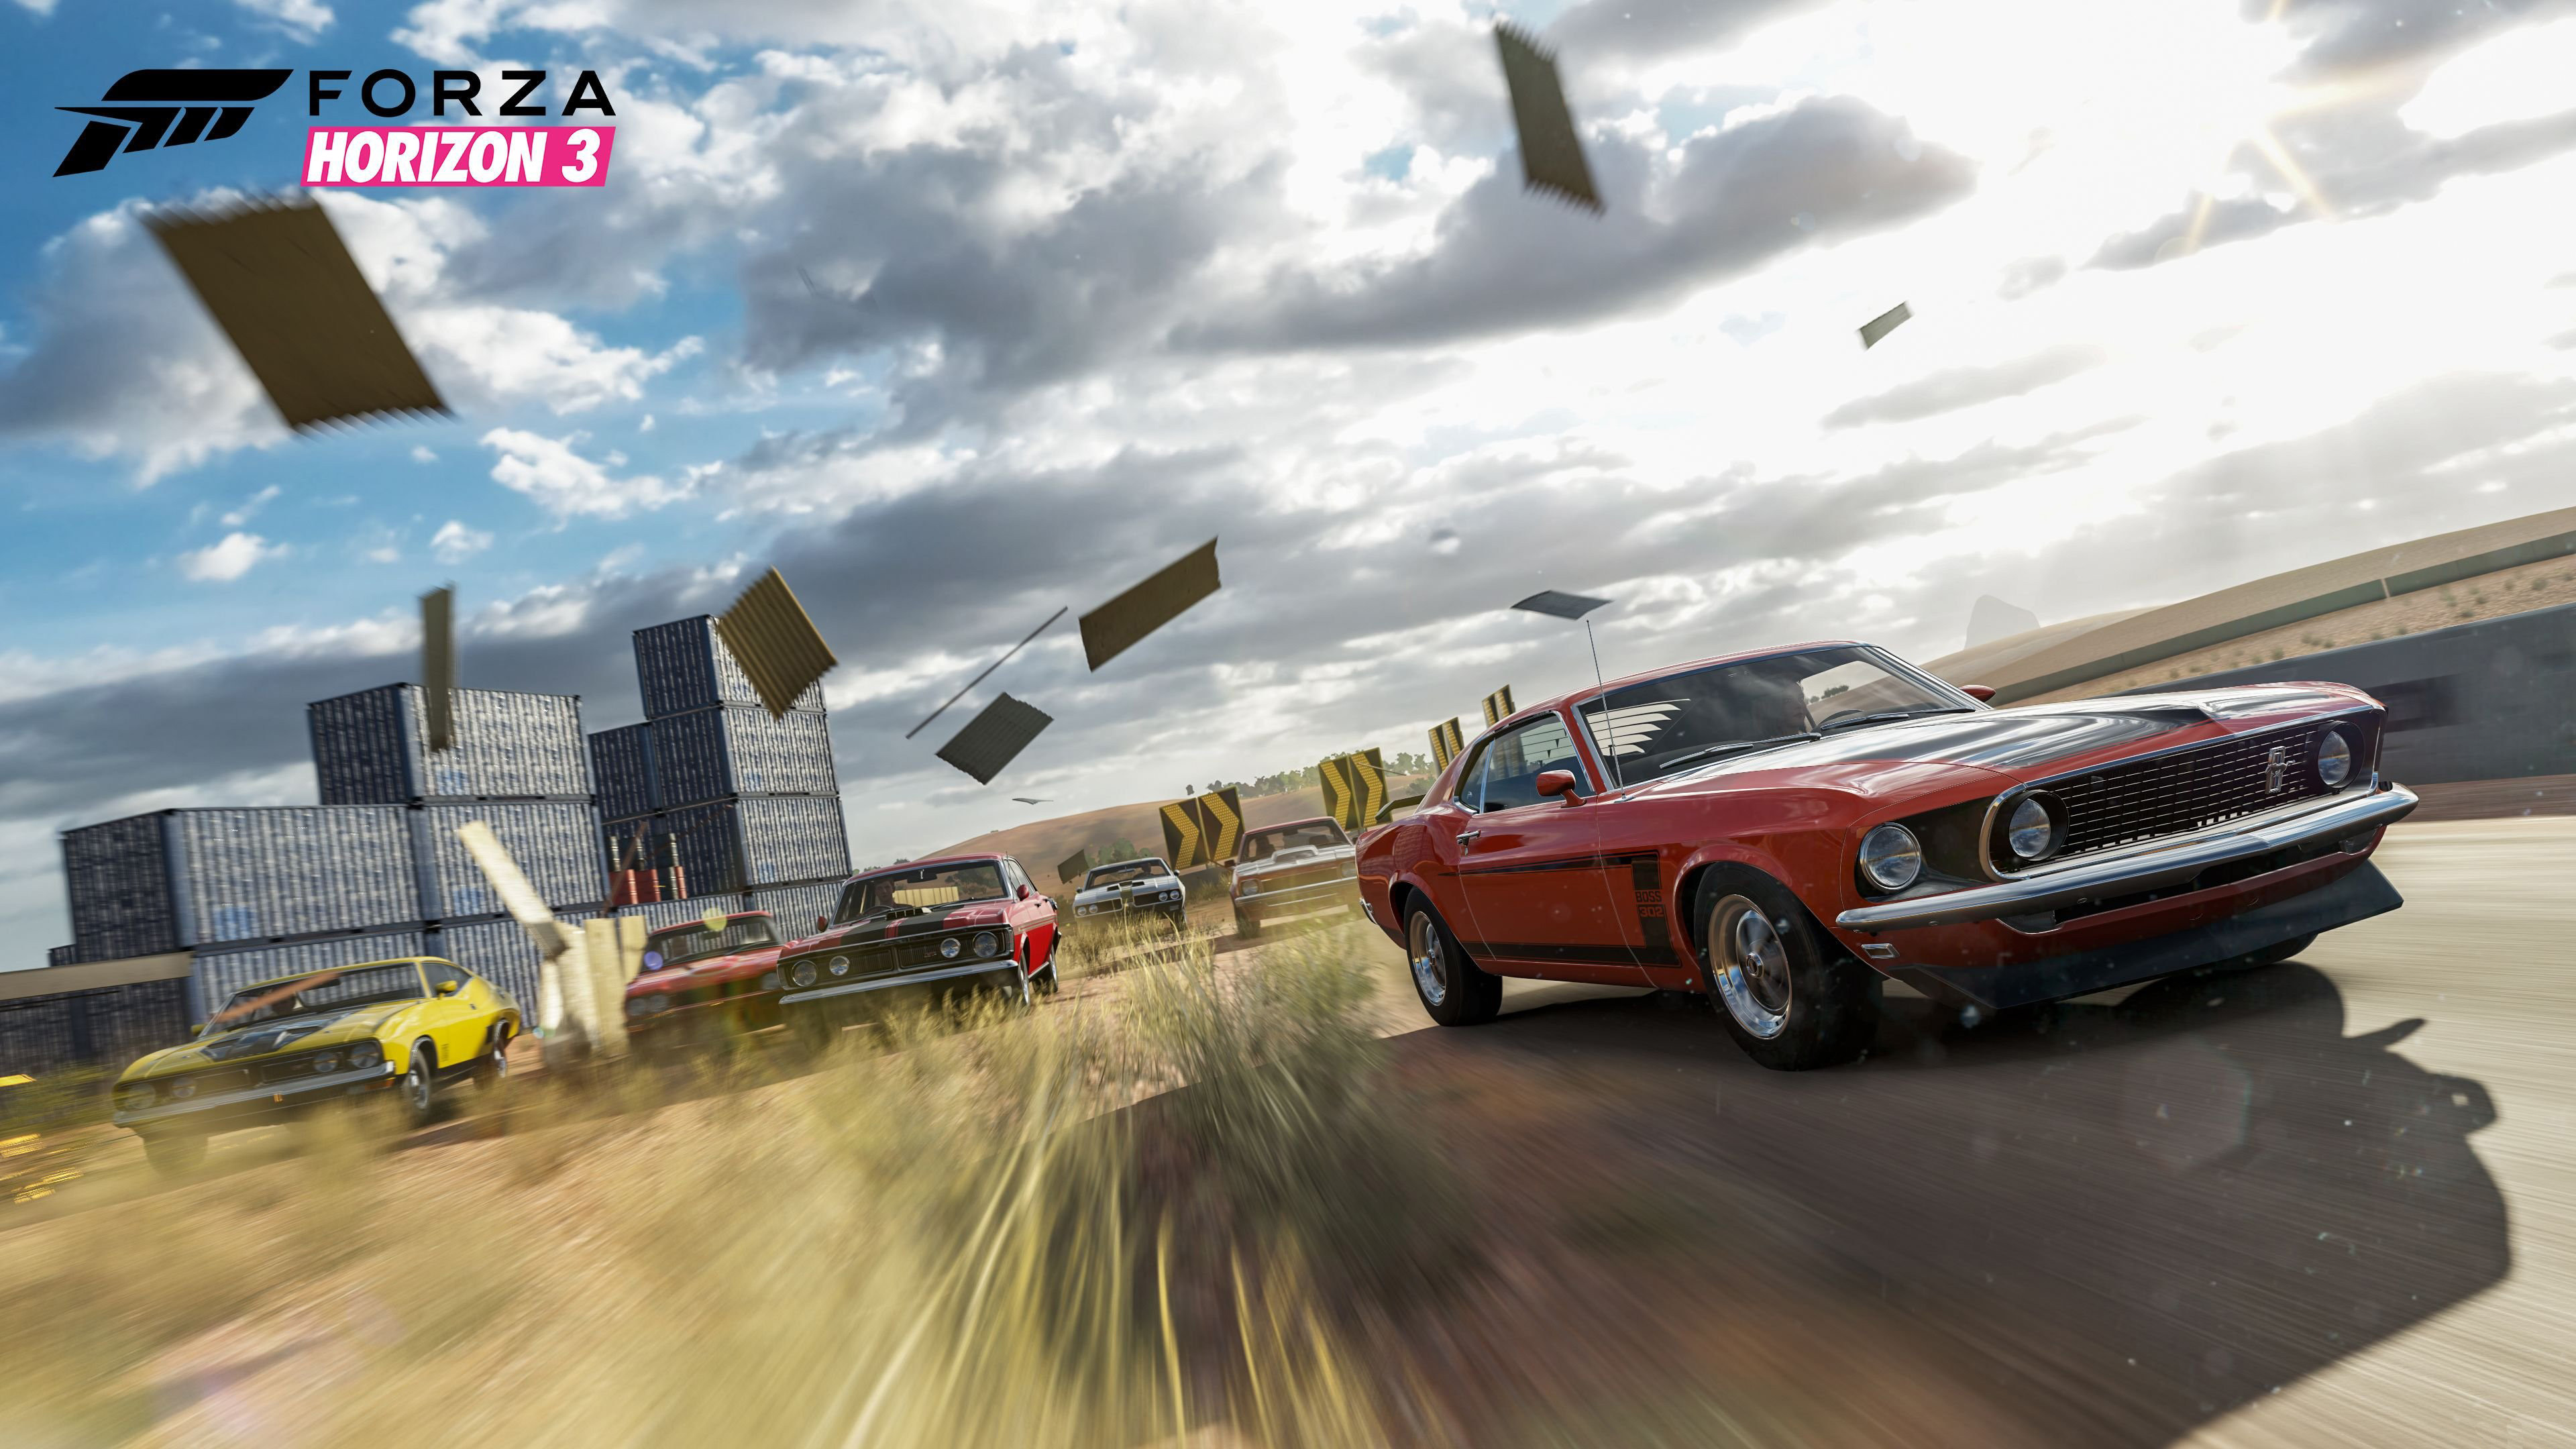 160 Forza Horizon 3 HD Wallpapers | Backgrounds - Wallpaper Abyss